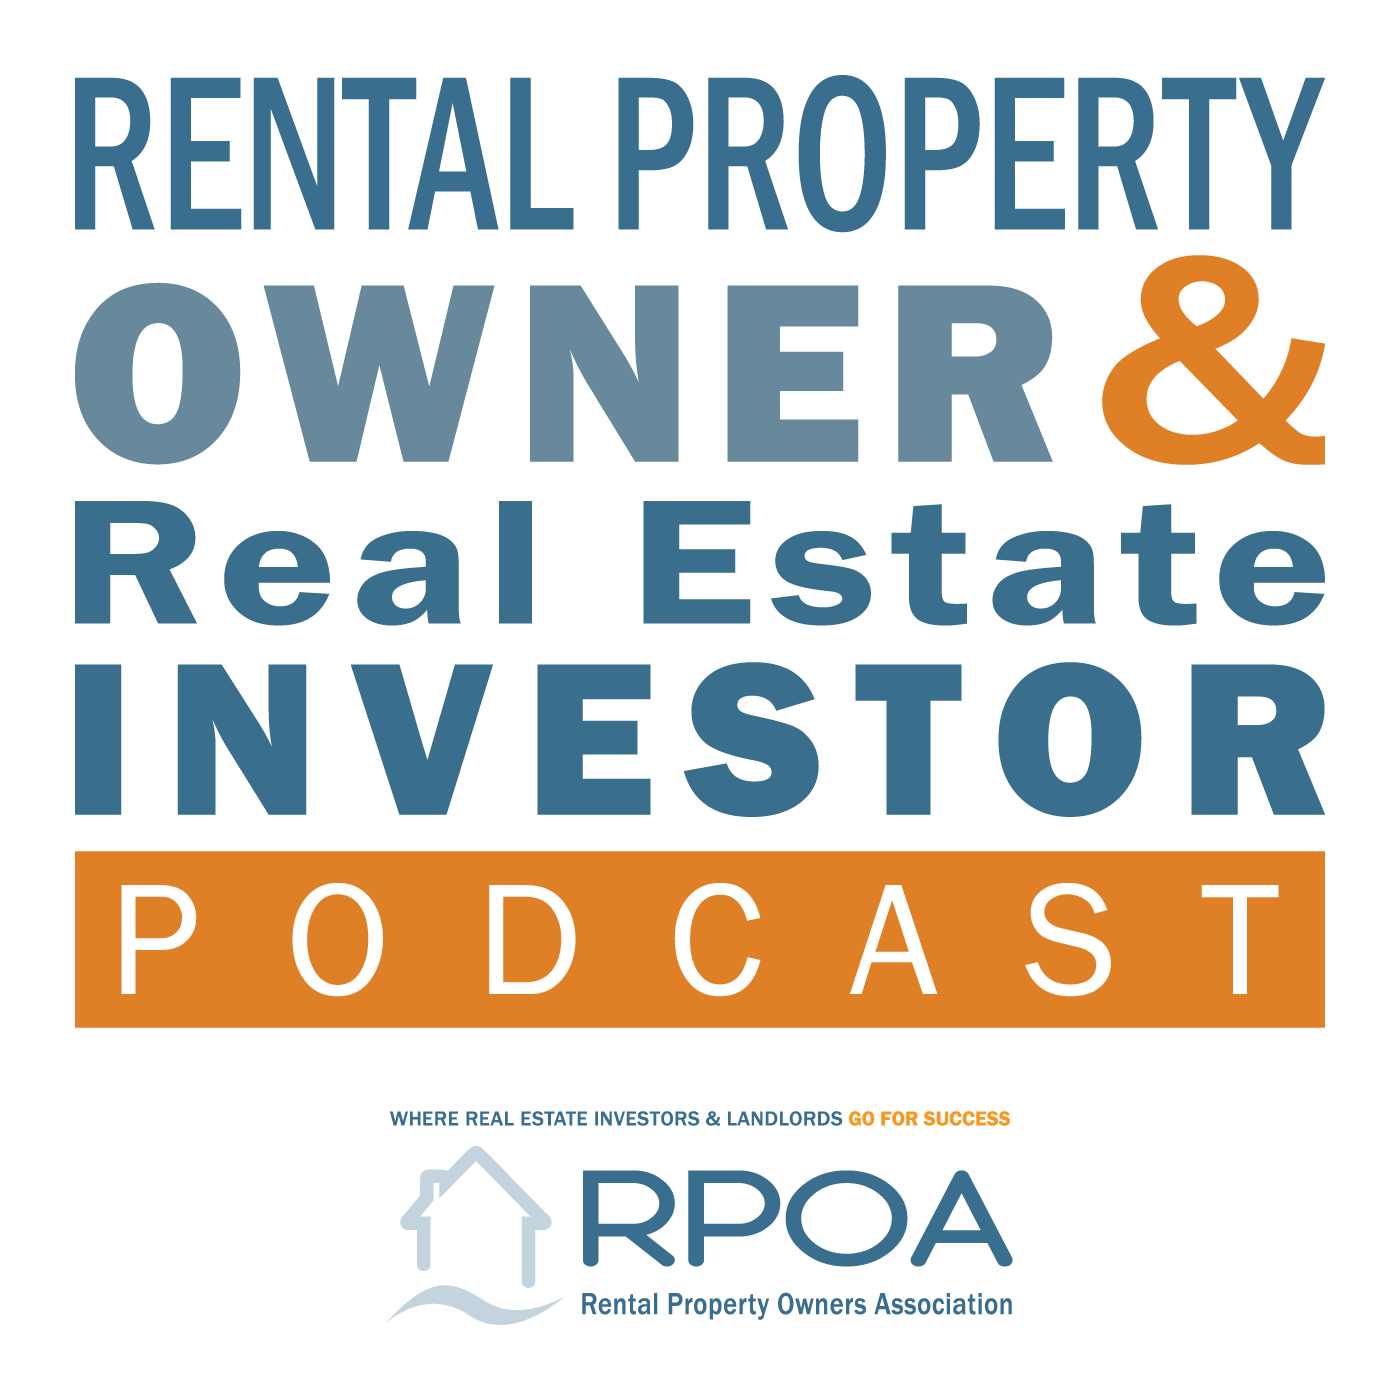 Rental Property Owner & Real Estate Investor Podcast show art